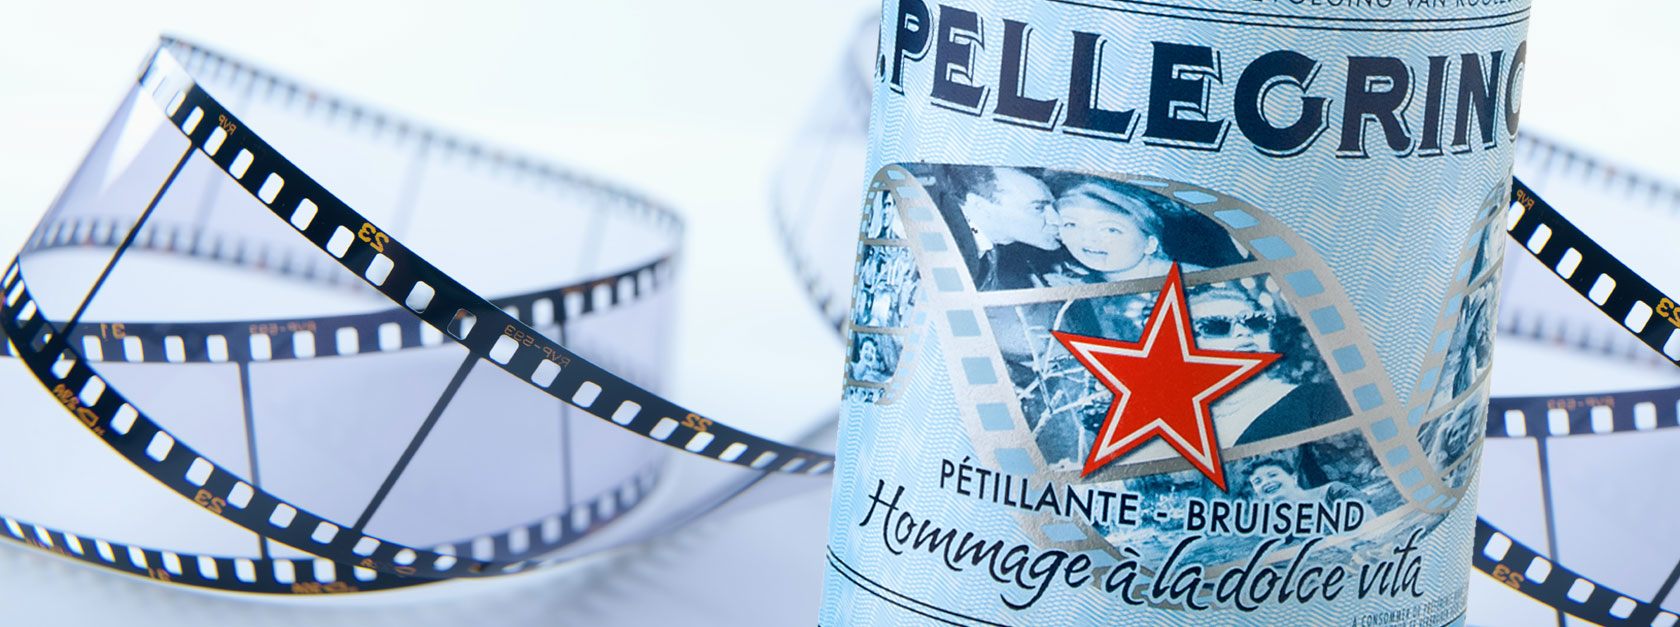 S.Pellegrino Cannes limited edition 2011/2012